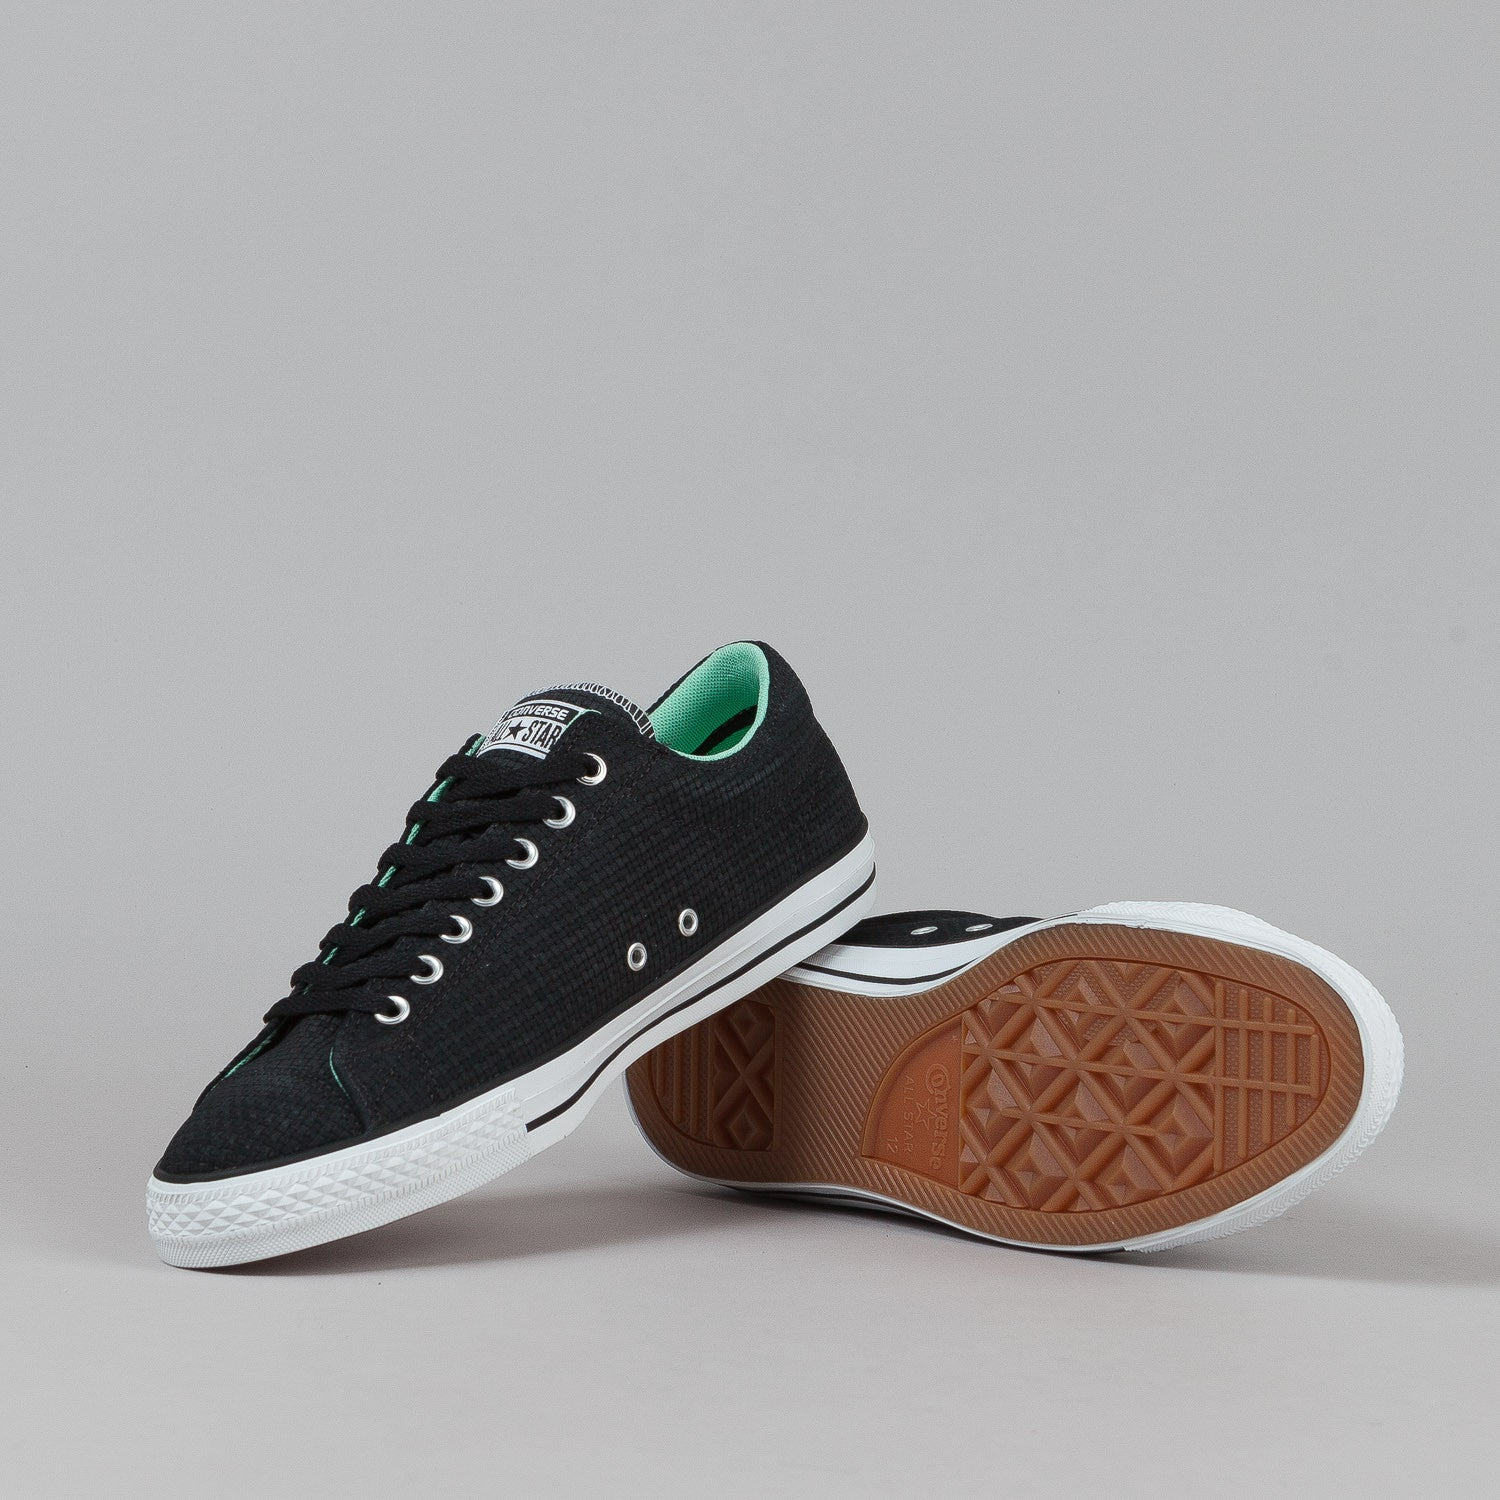 Converse CTS OX Black / White / Peppermint